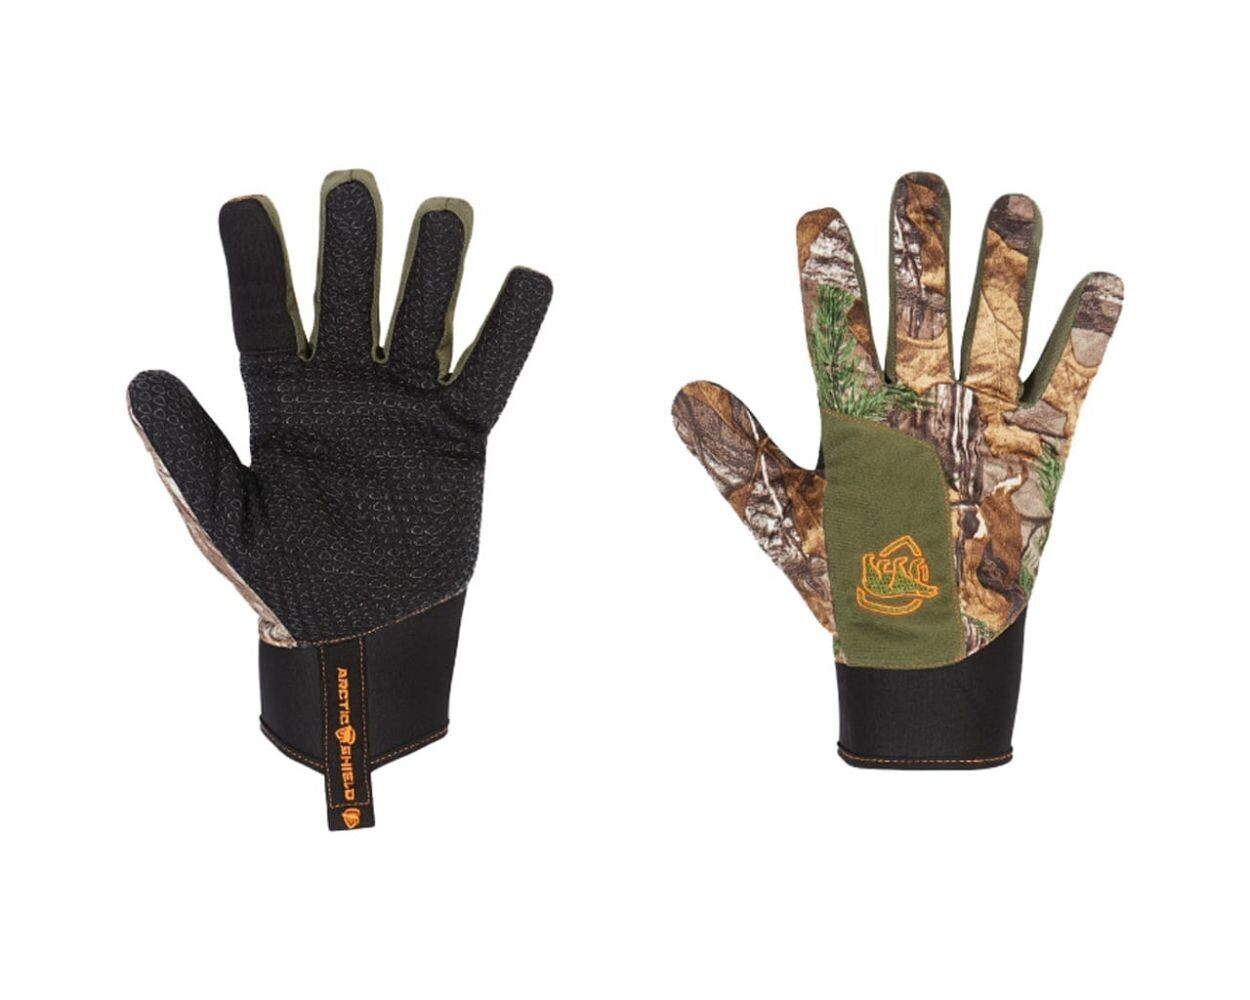 HEAT ECHO INSULATED SHOOTERS GLOVES RTE 526400